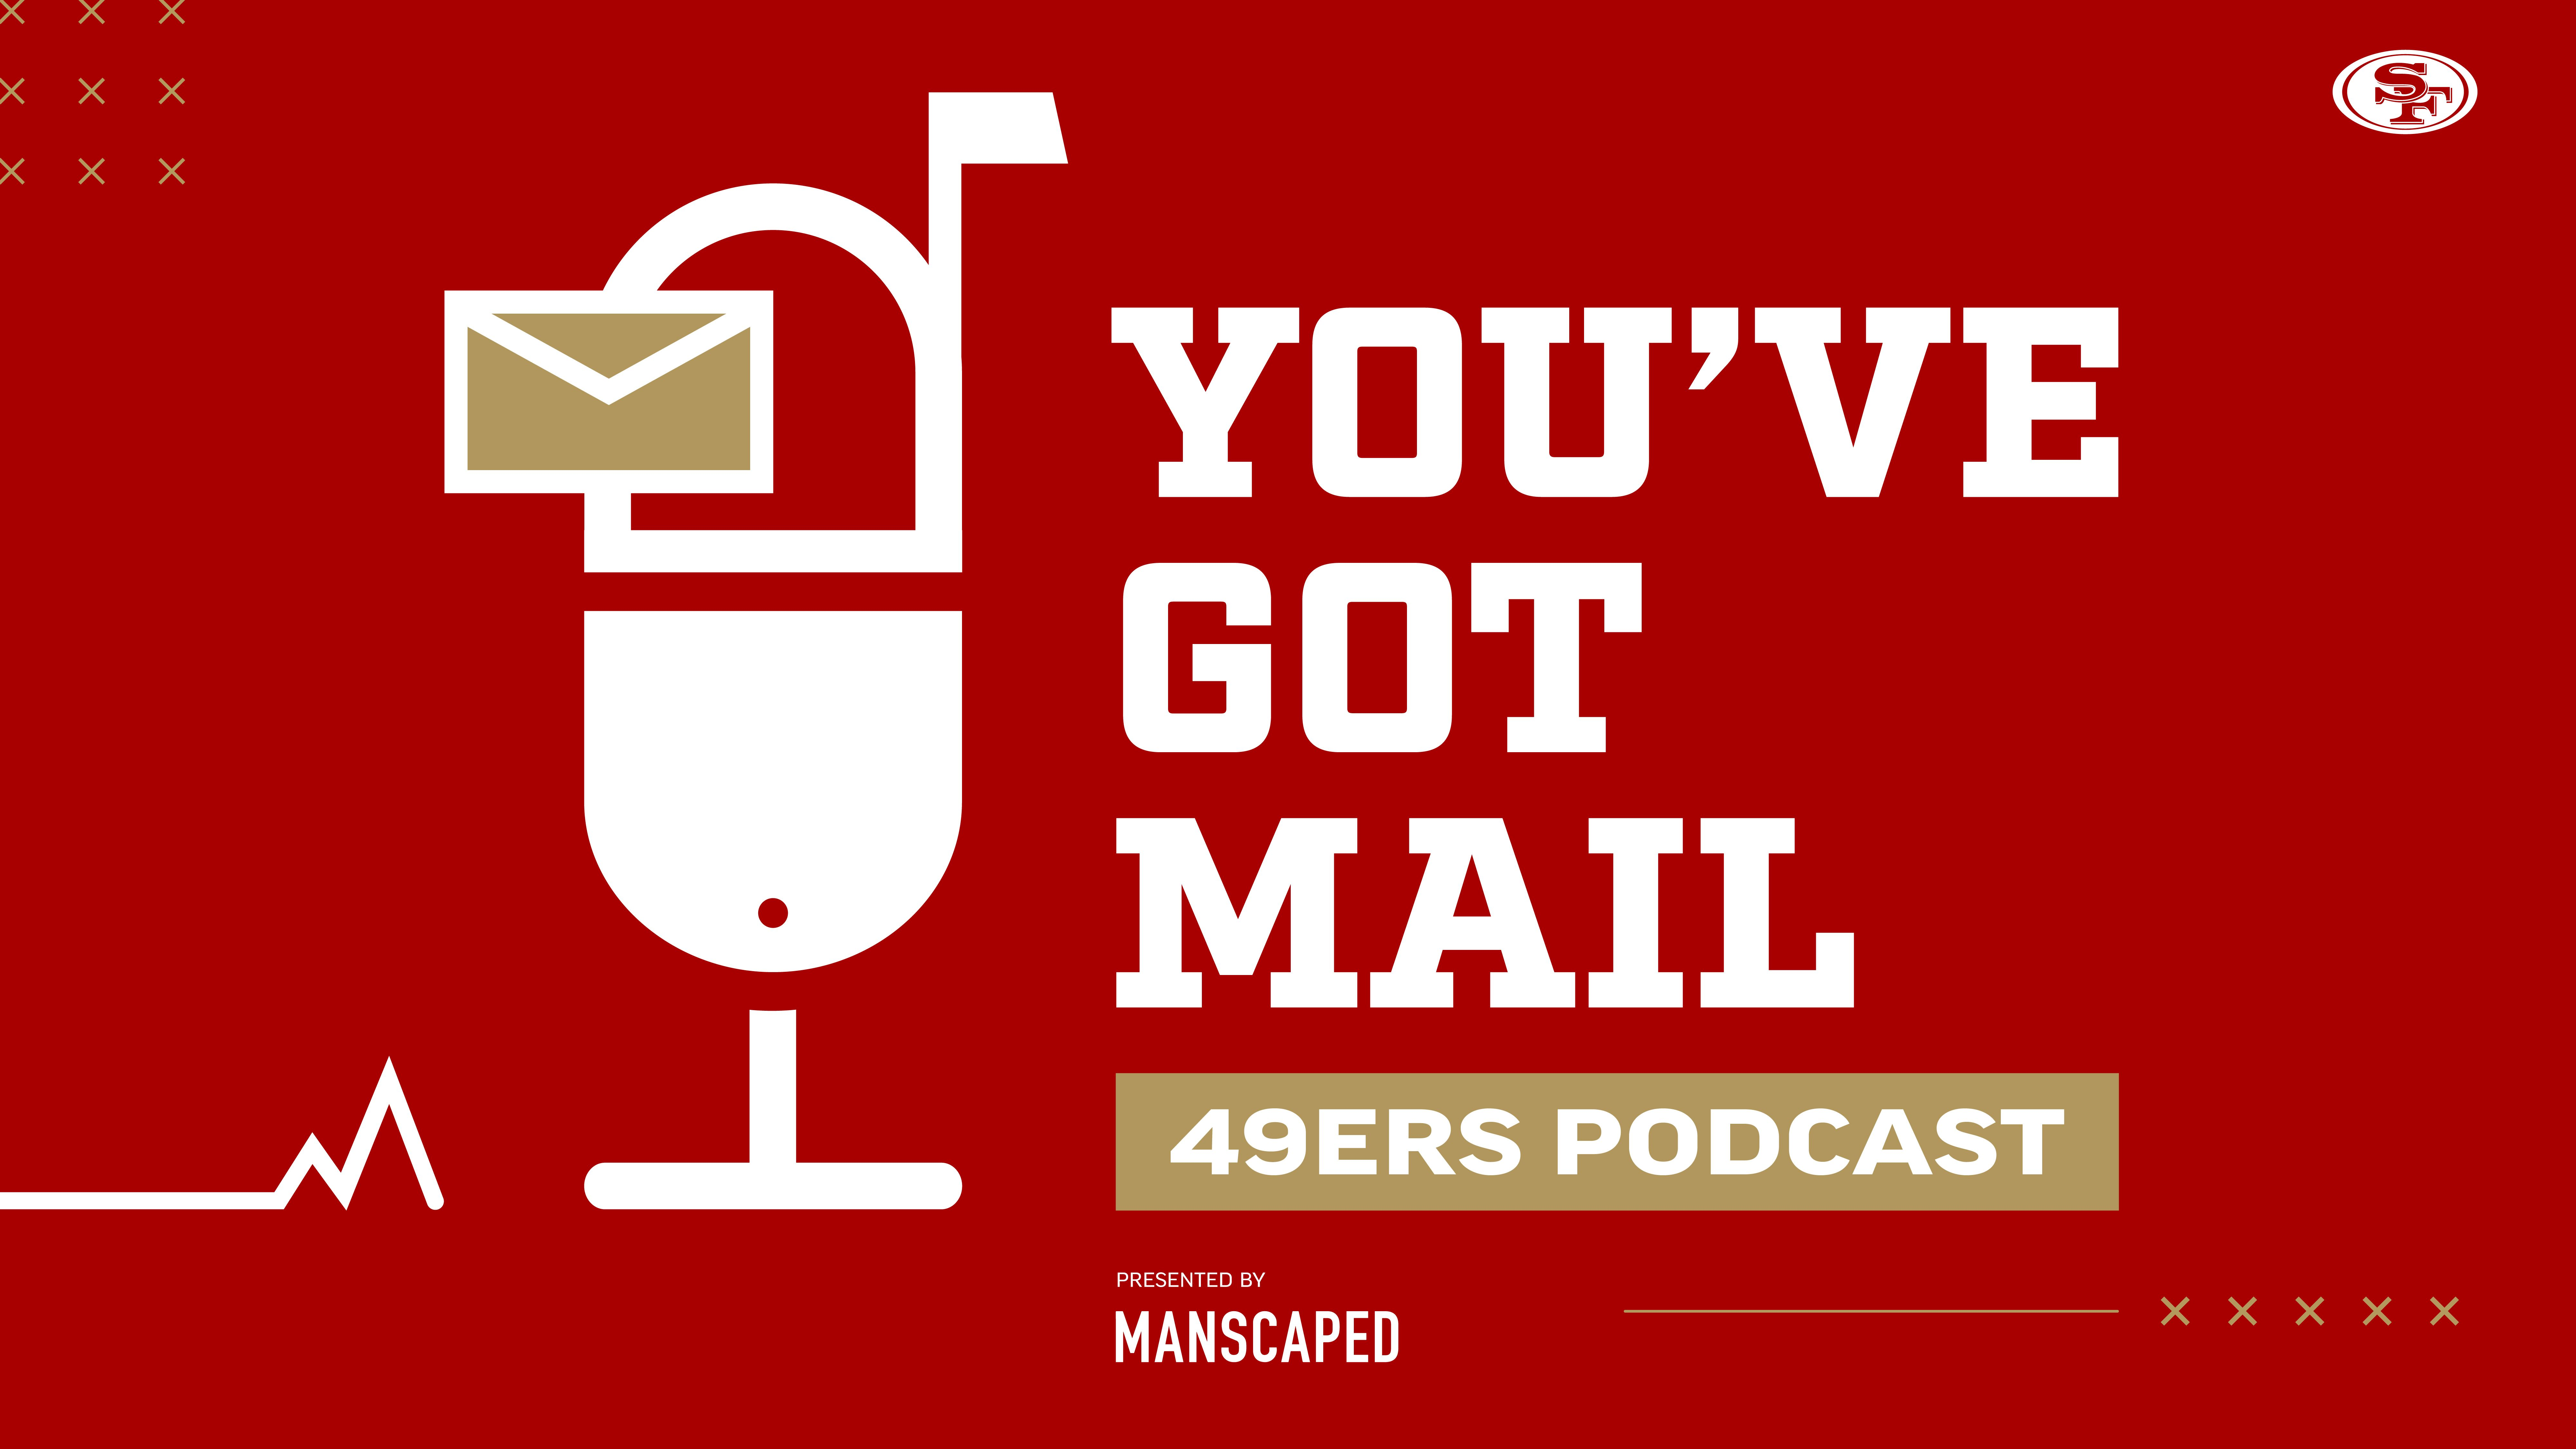 0605-2 You've Got Mail 49ers Podcast Graphics_3-02